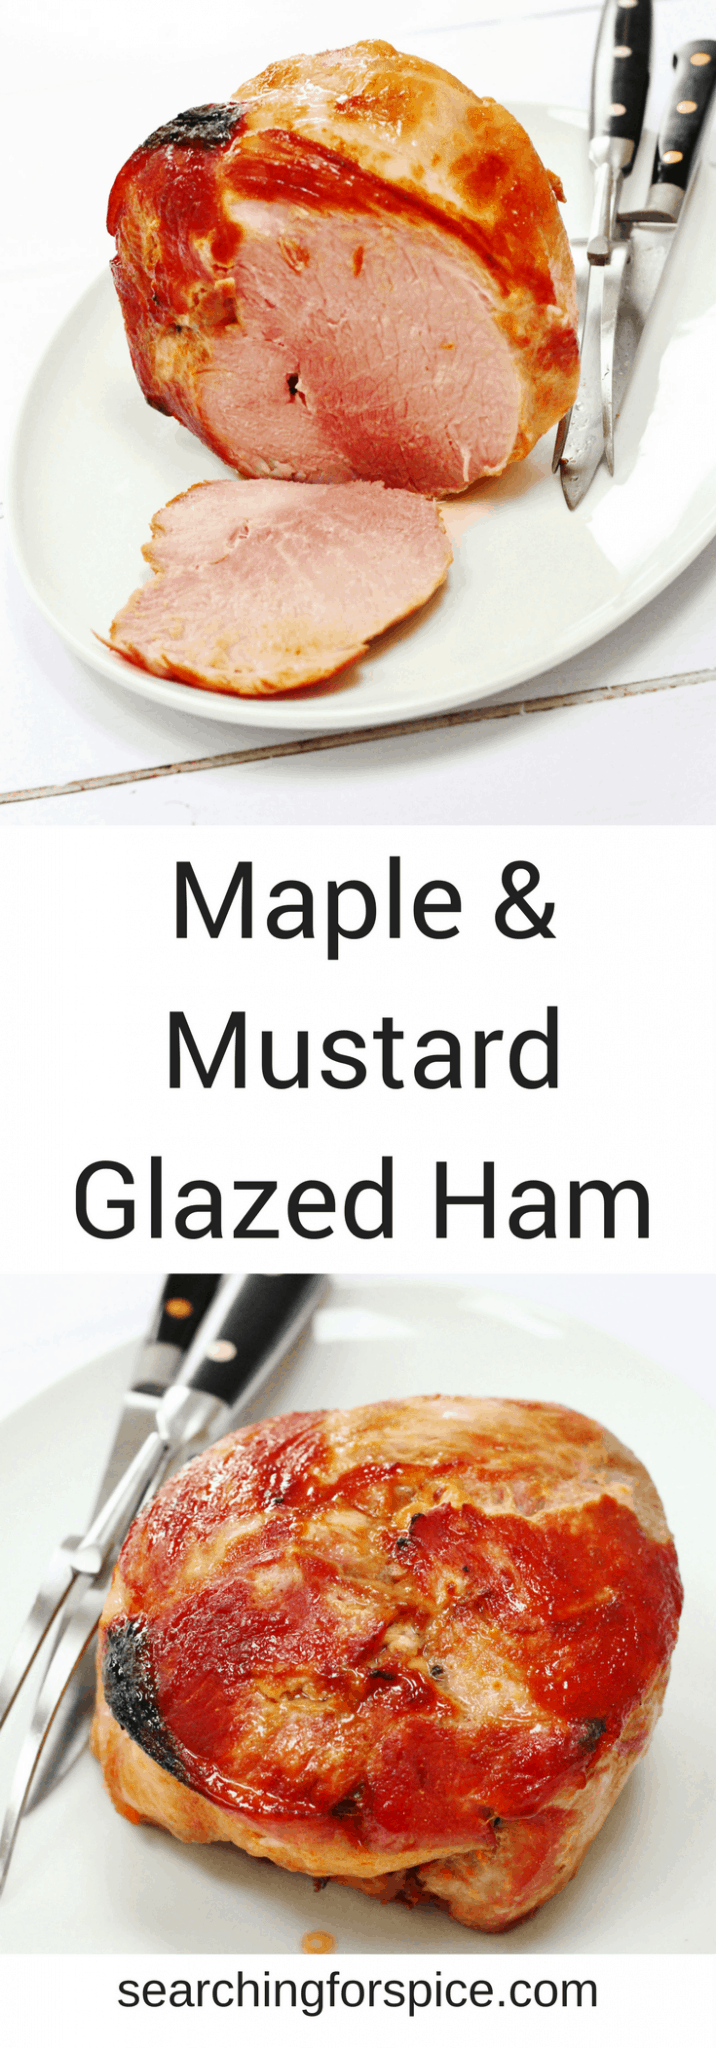 Maple and Mustard Glazed Ham | Searching for Spice